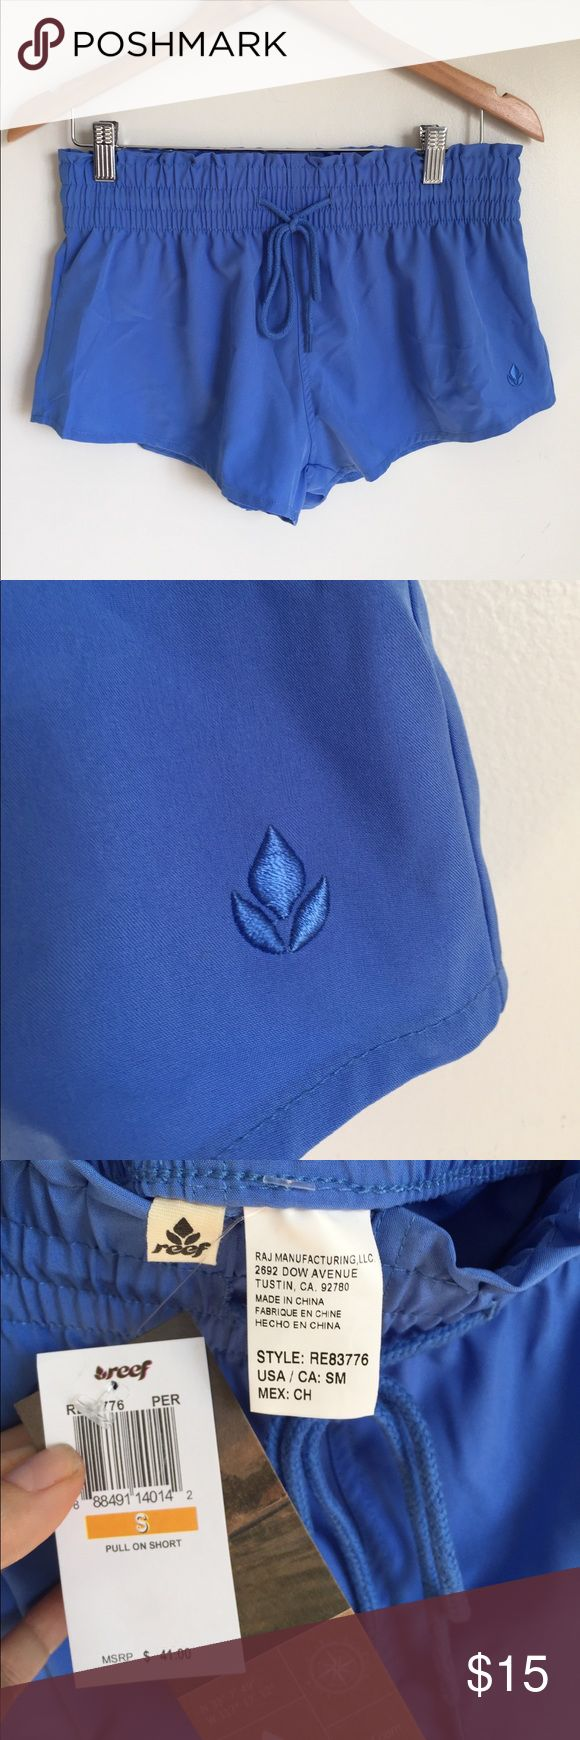 """Reef pull in elastic waist board short Beautiful blue color board shorts active shorts surf shorts. Perfect for modest Swimsuit or with bikini top! Drawstring waist, thick 3"""" elastic waistband 2"""" inseam new with tags! Reef Swim"""